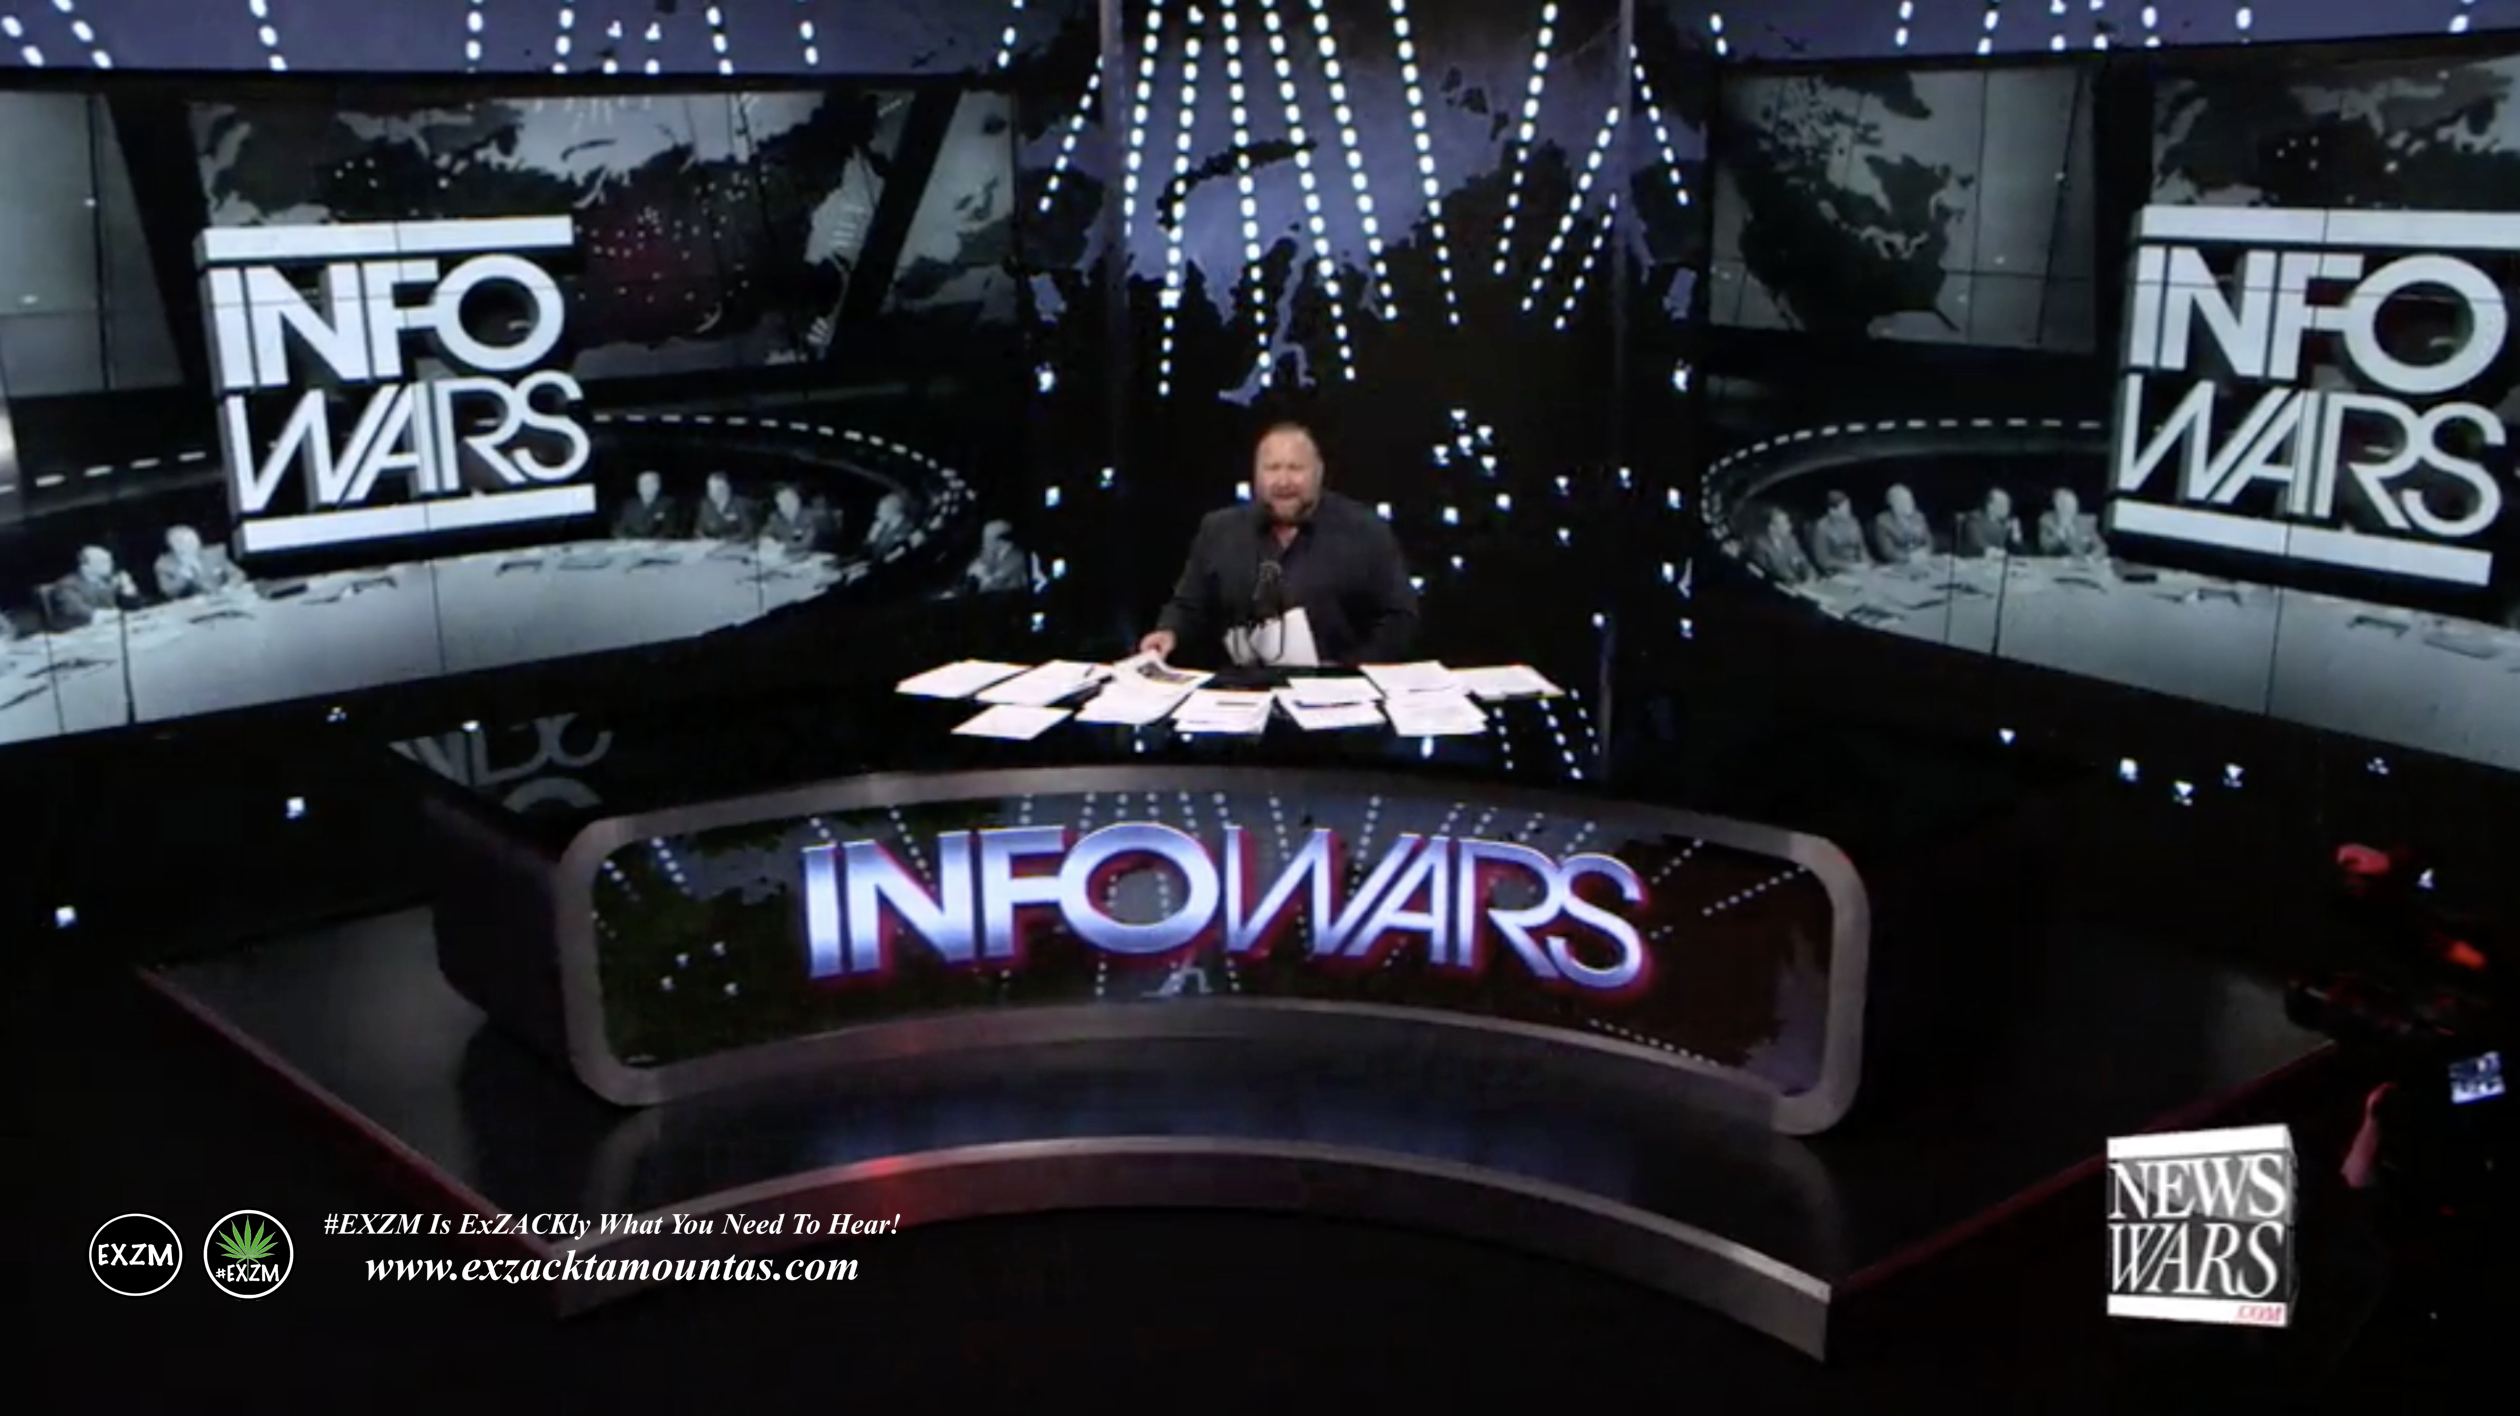 Alex Jones Infowars Studio EXZM Zack Mount February 5th 2021 copy